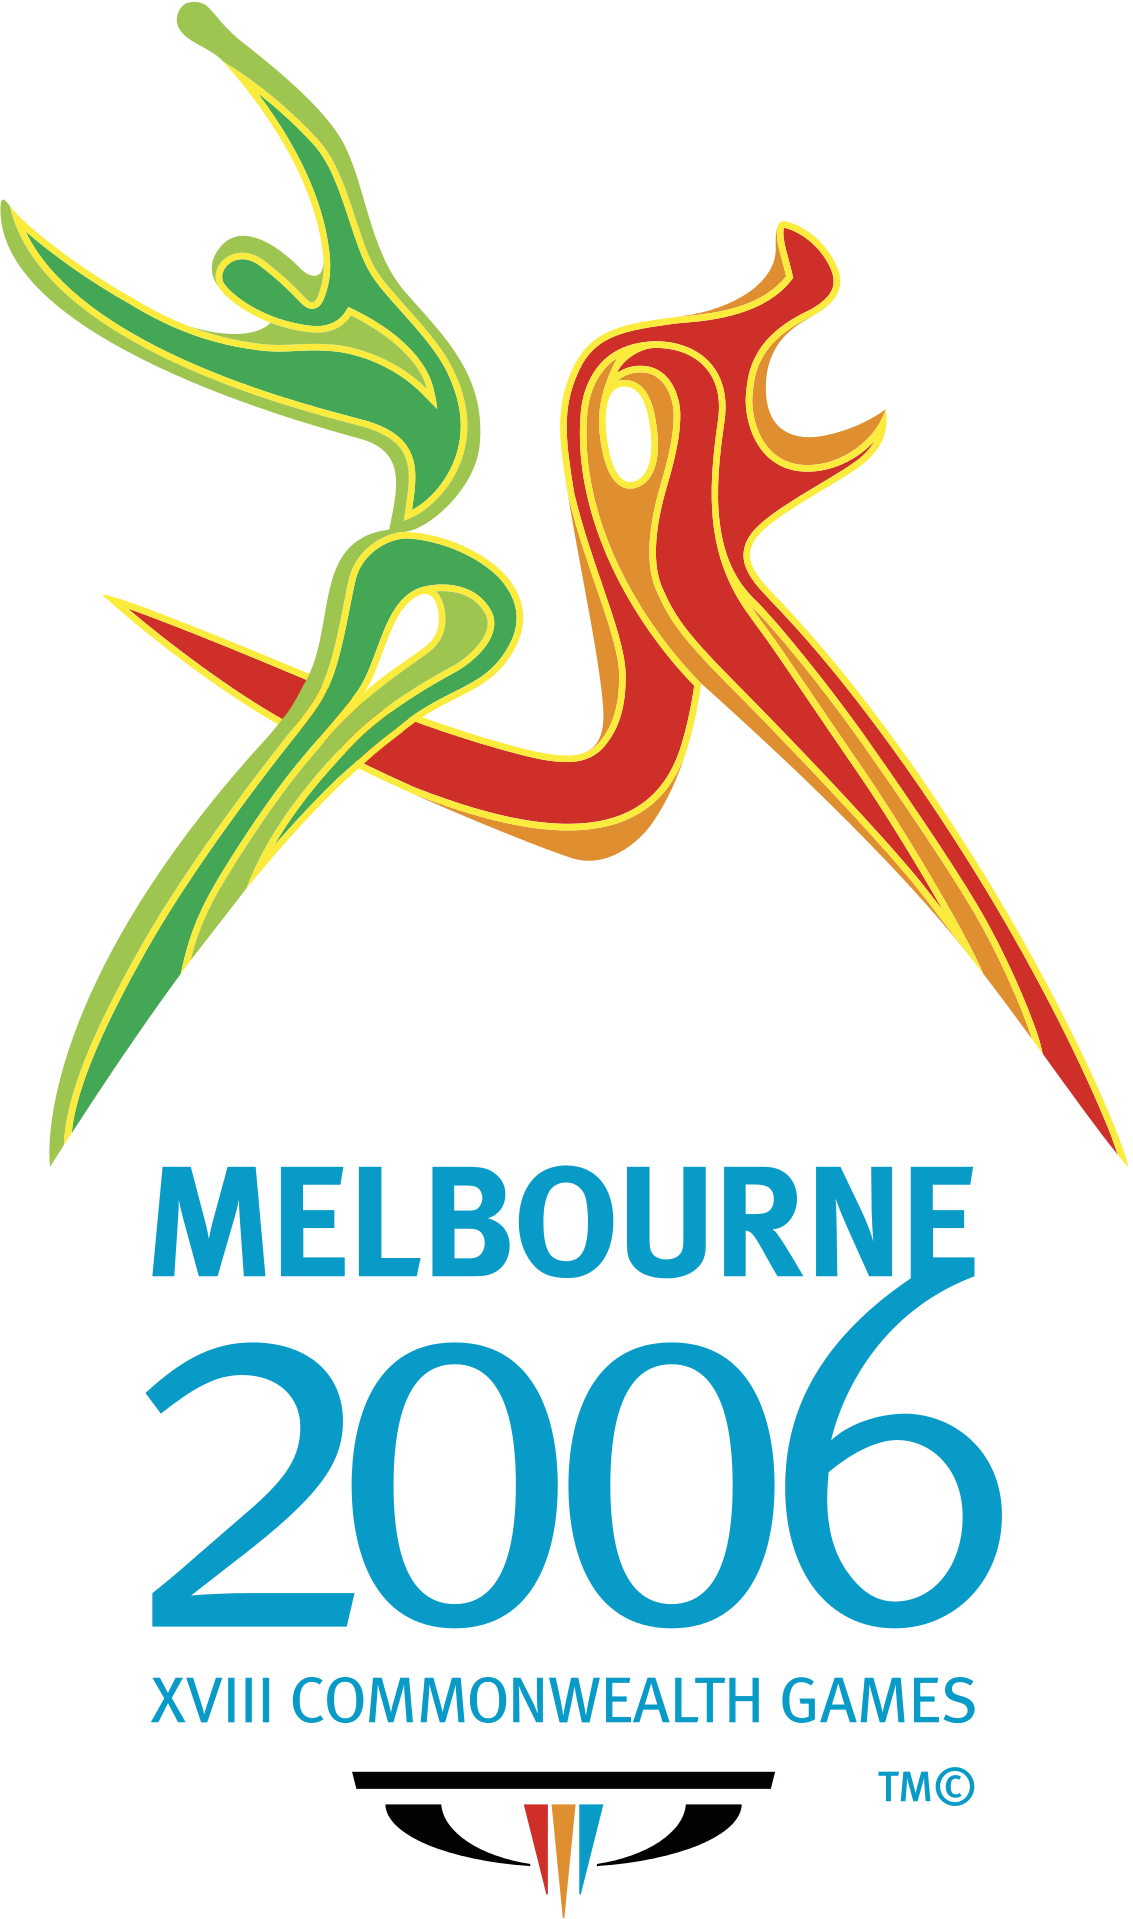 18th Commonwealth Games The 2006 Commonwealth Games Officially The Xviii Commonwealth Games Were Held In Melbour Commonwealth Games Commonwealth Sport Event